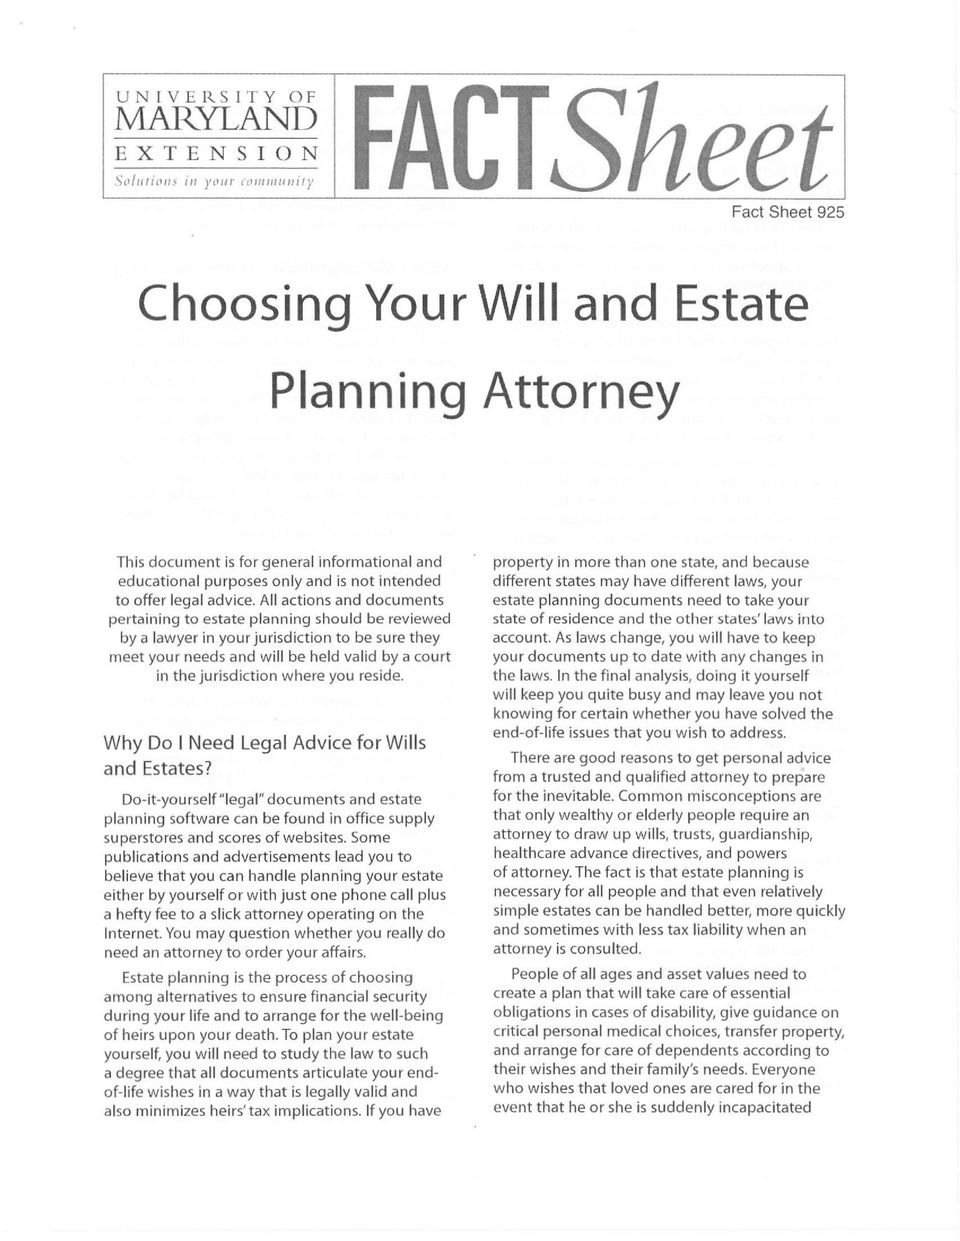 All actions and documents pertaining to estate planning should be reviewed by a lawyer in your jurisdiction to be su re they meet your needs and will be held valid by a court in the jurisdiction